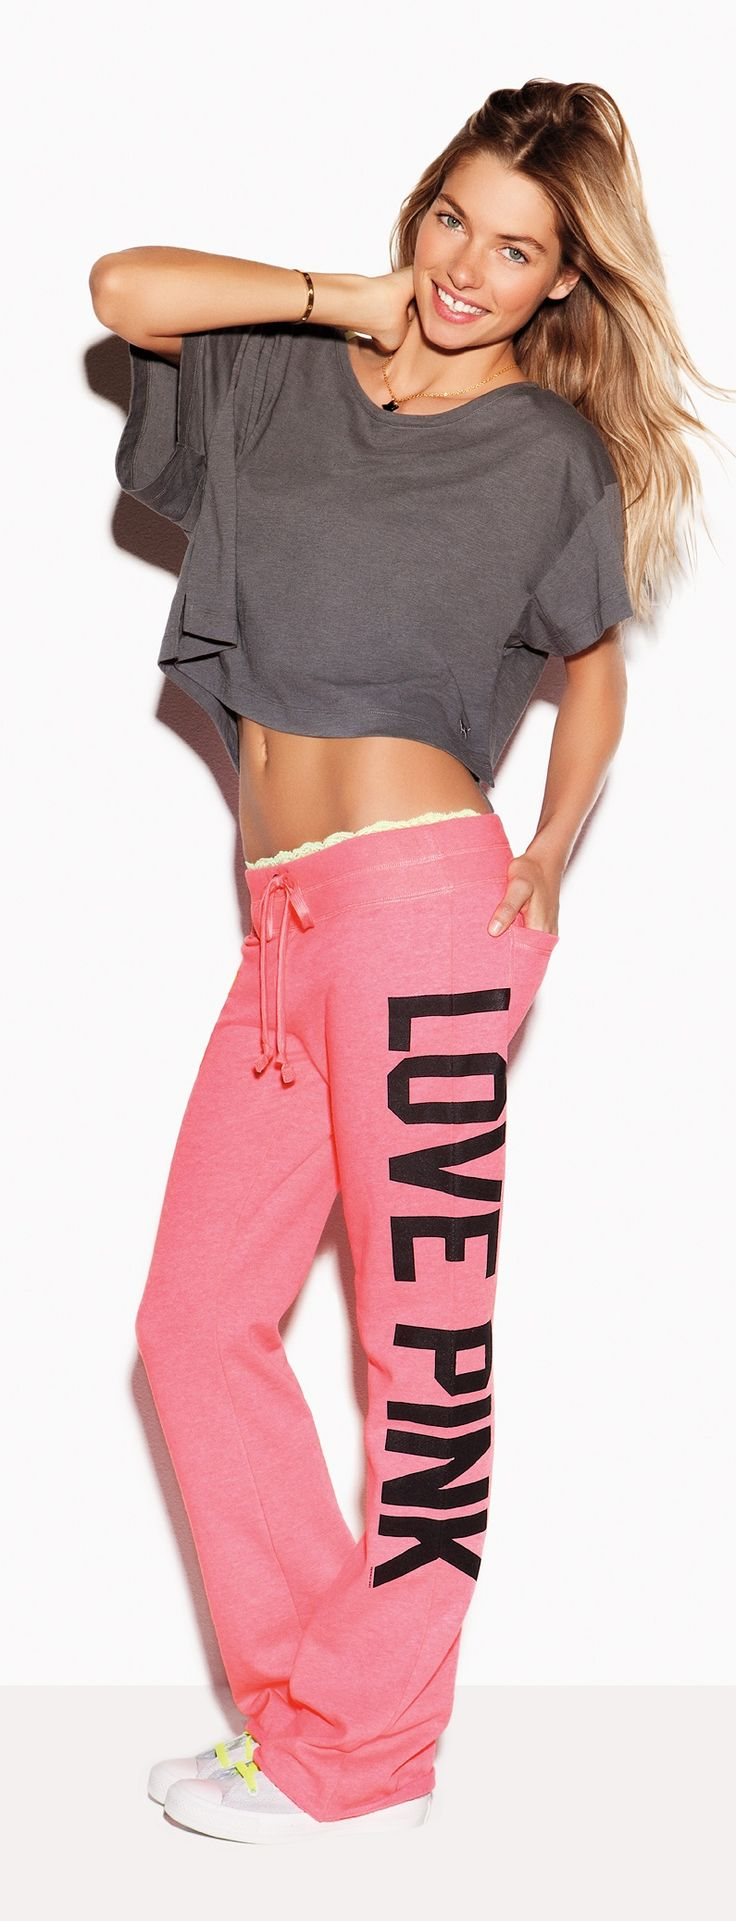 Browse our cute sweats to find the perfect lounge pant style for you. From skinny and high waisted to boyfriend and classic sweatpant, PINK has it all. Be comfy and stylish in PINK joggers and sweatpants.